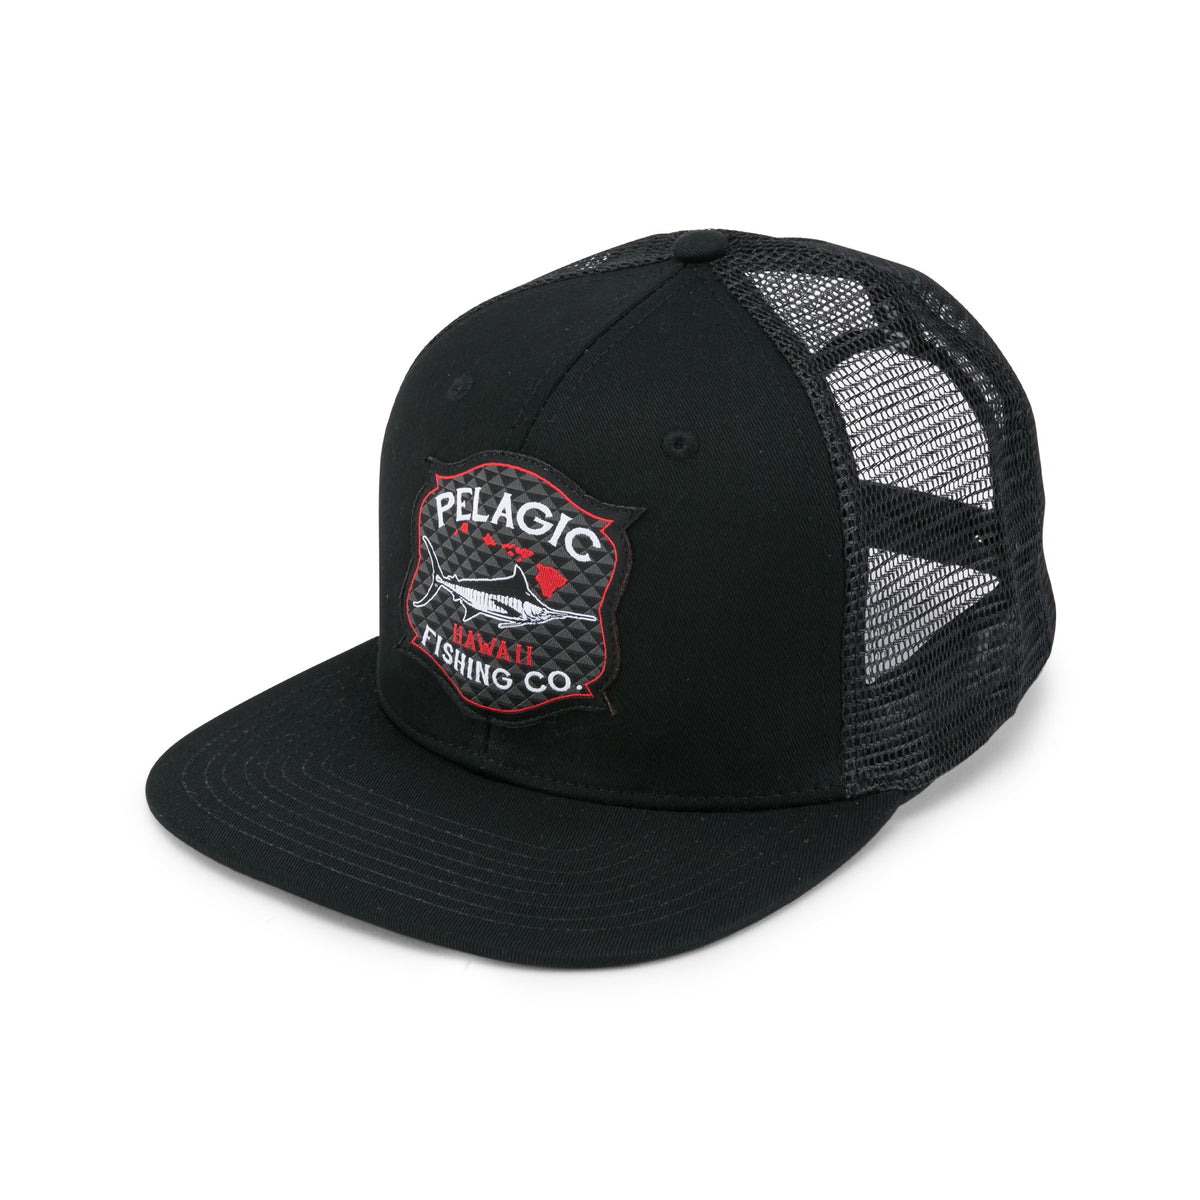 Hawaii Fishing Co. Snapback Fishing Hat Big Image - 1